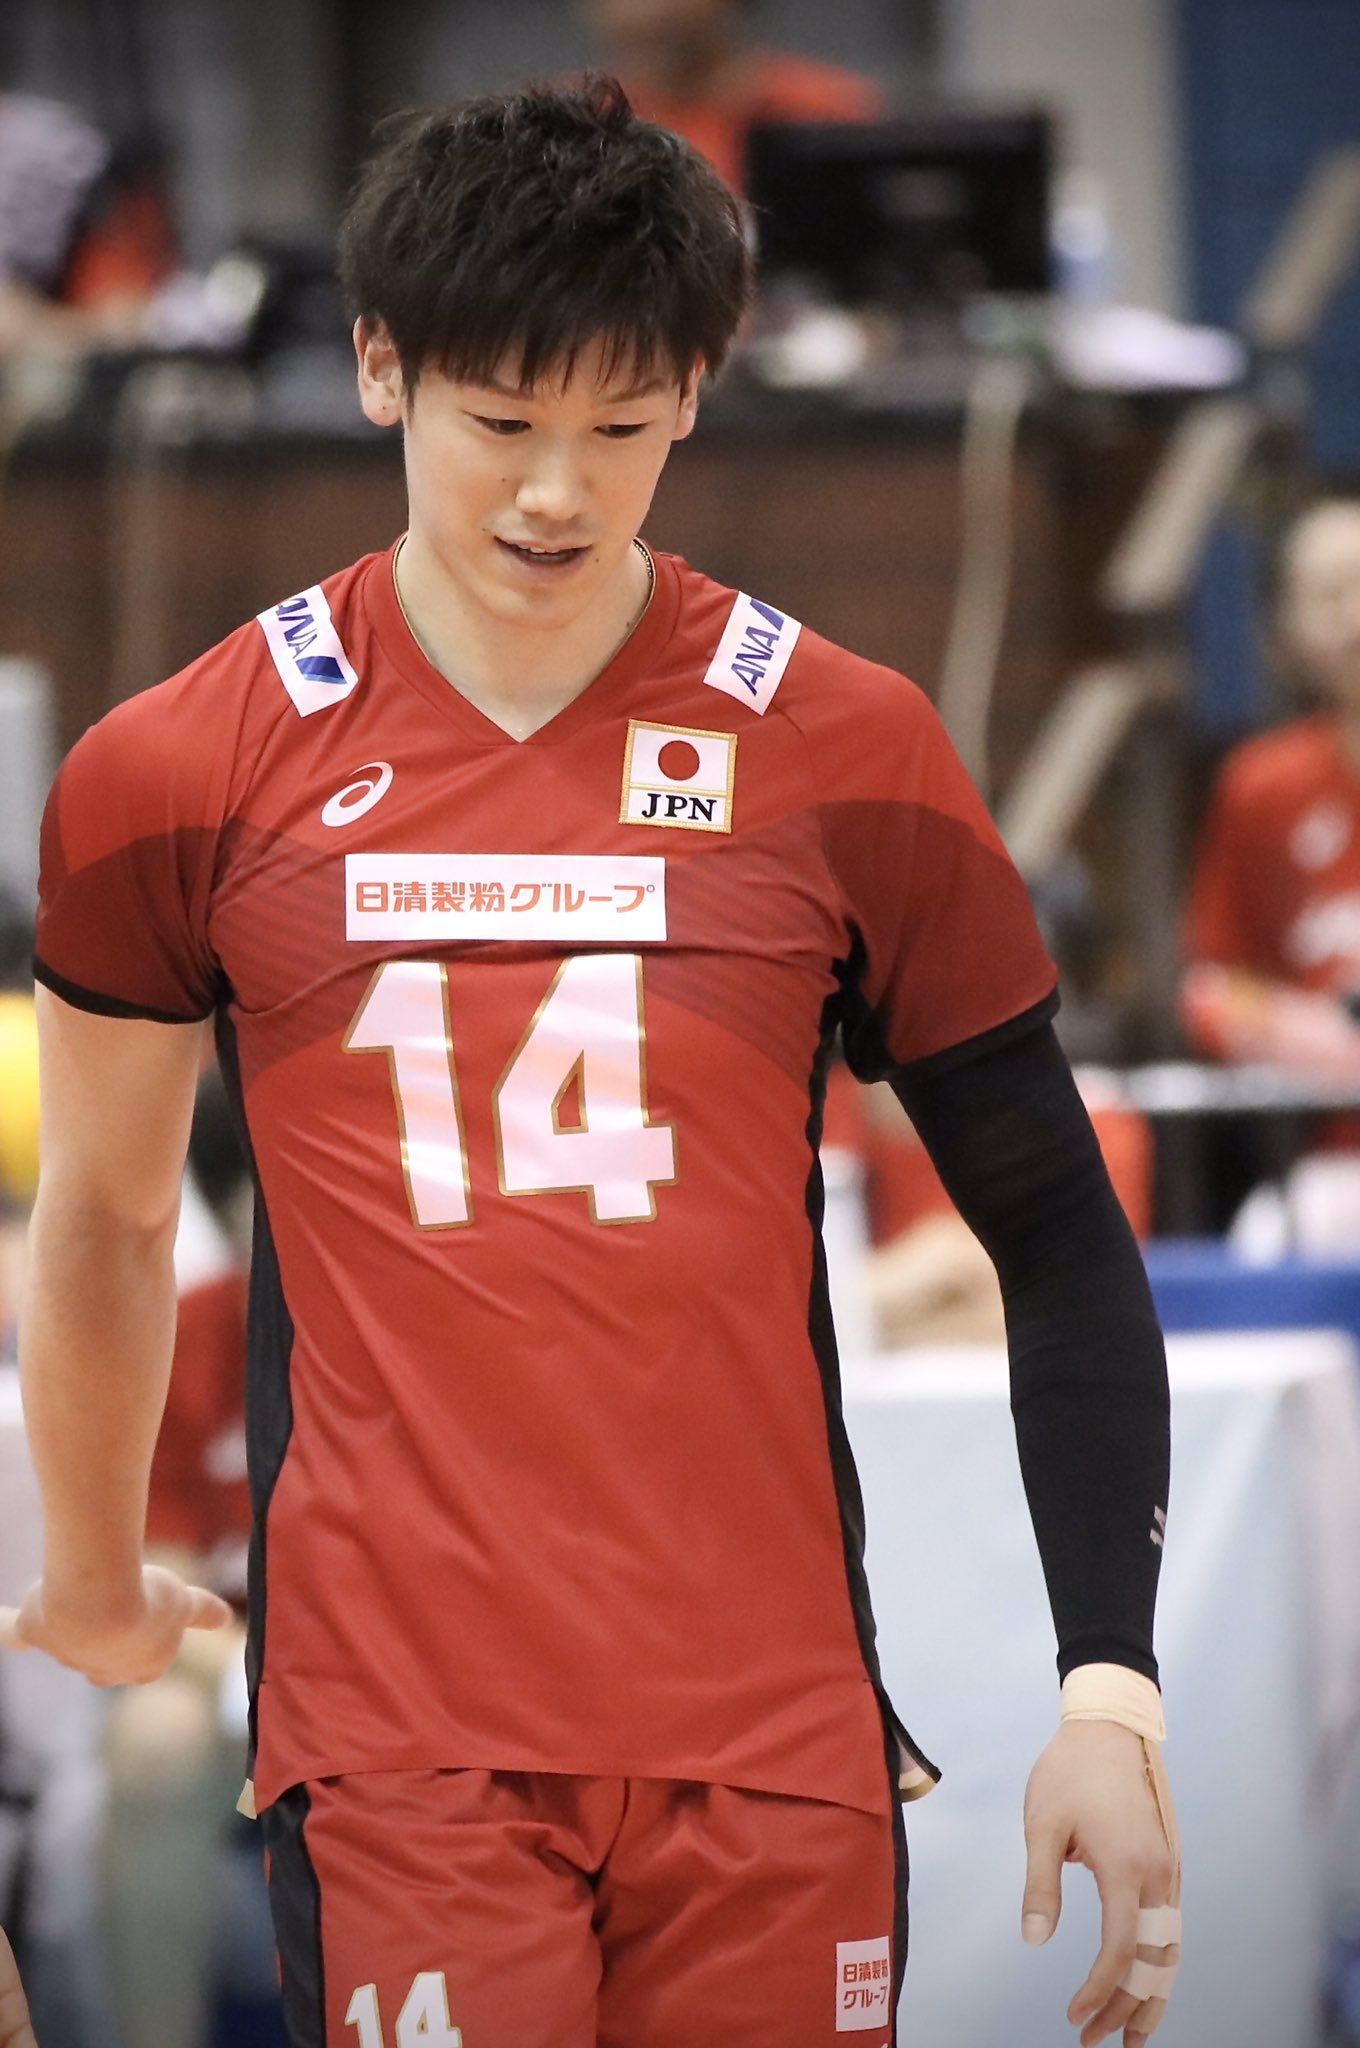 Volleyball Players Volleyball Players Volleyball Volleyball Quotes Softball Players Volleyball Drill In 2020 Japan Volleyball Team Coaching Volleyball Basketball Girls